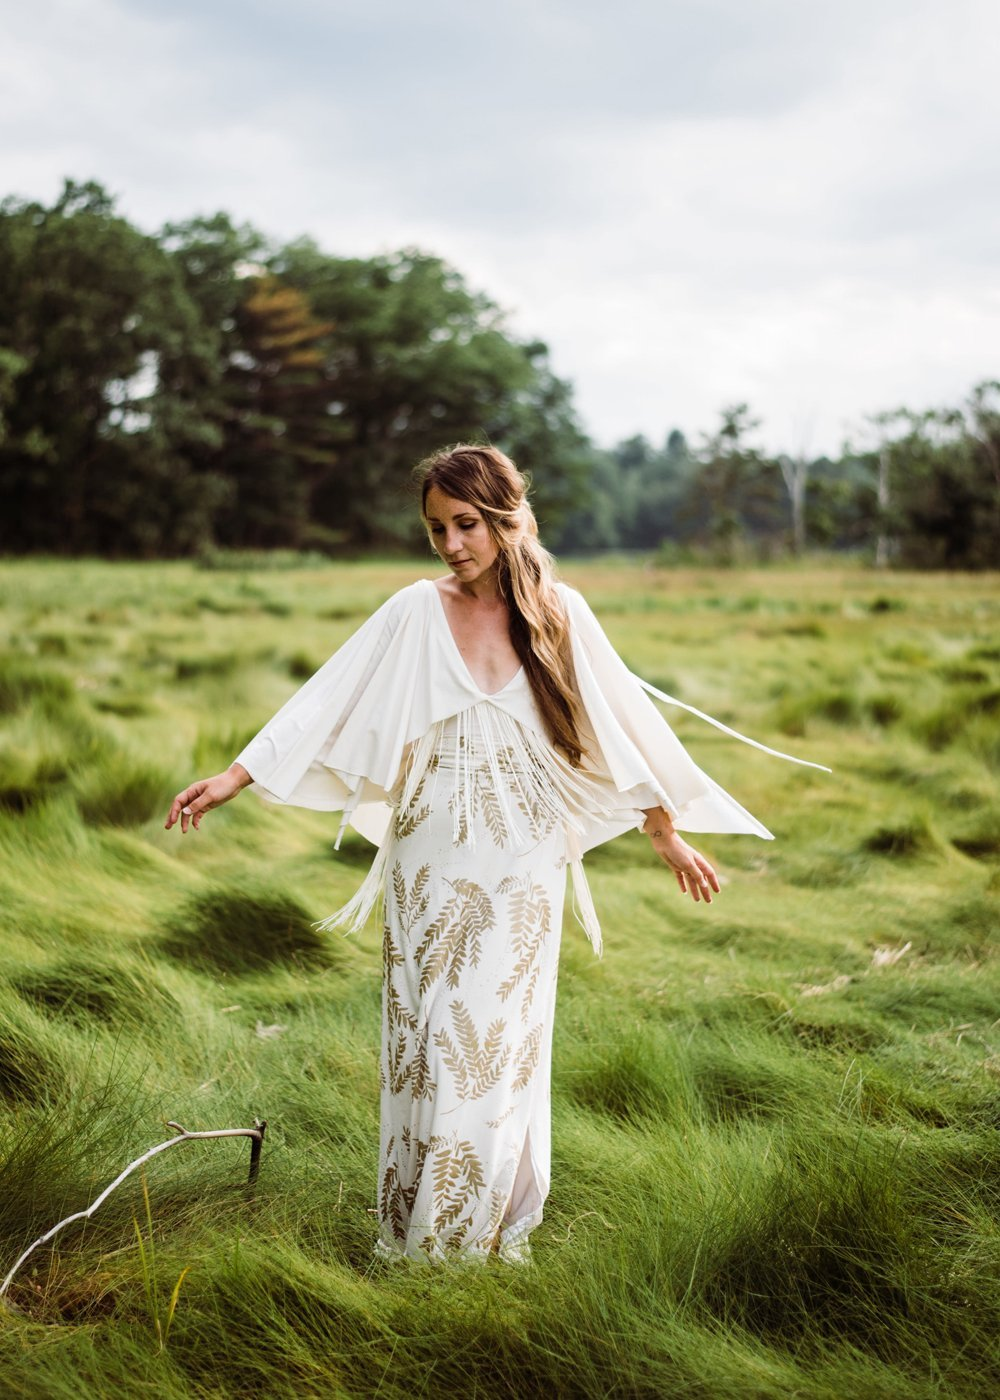 The Ecru Gown $689, photo by Meghan Stempel